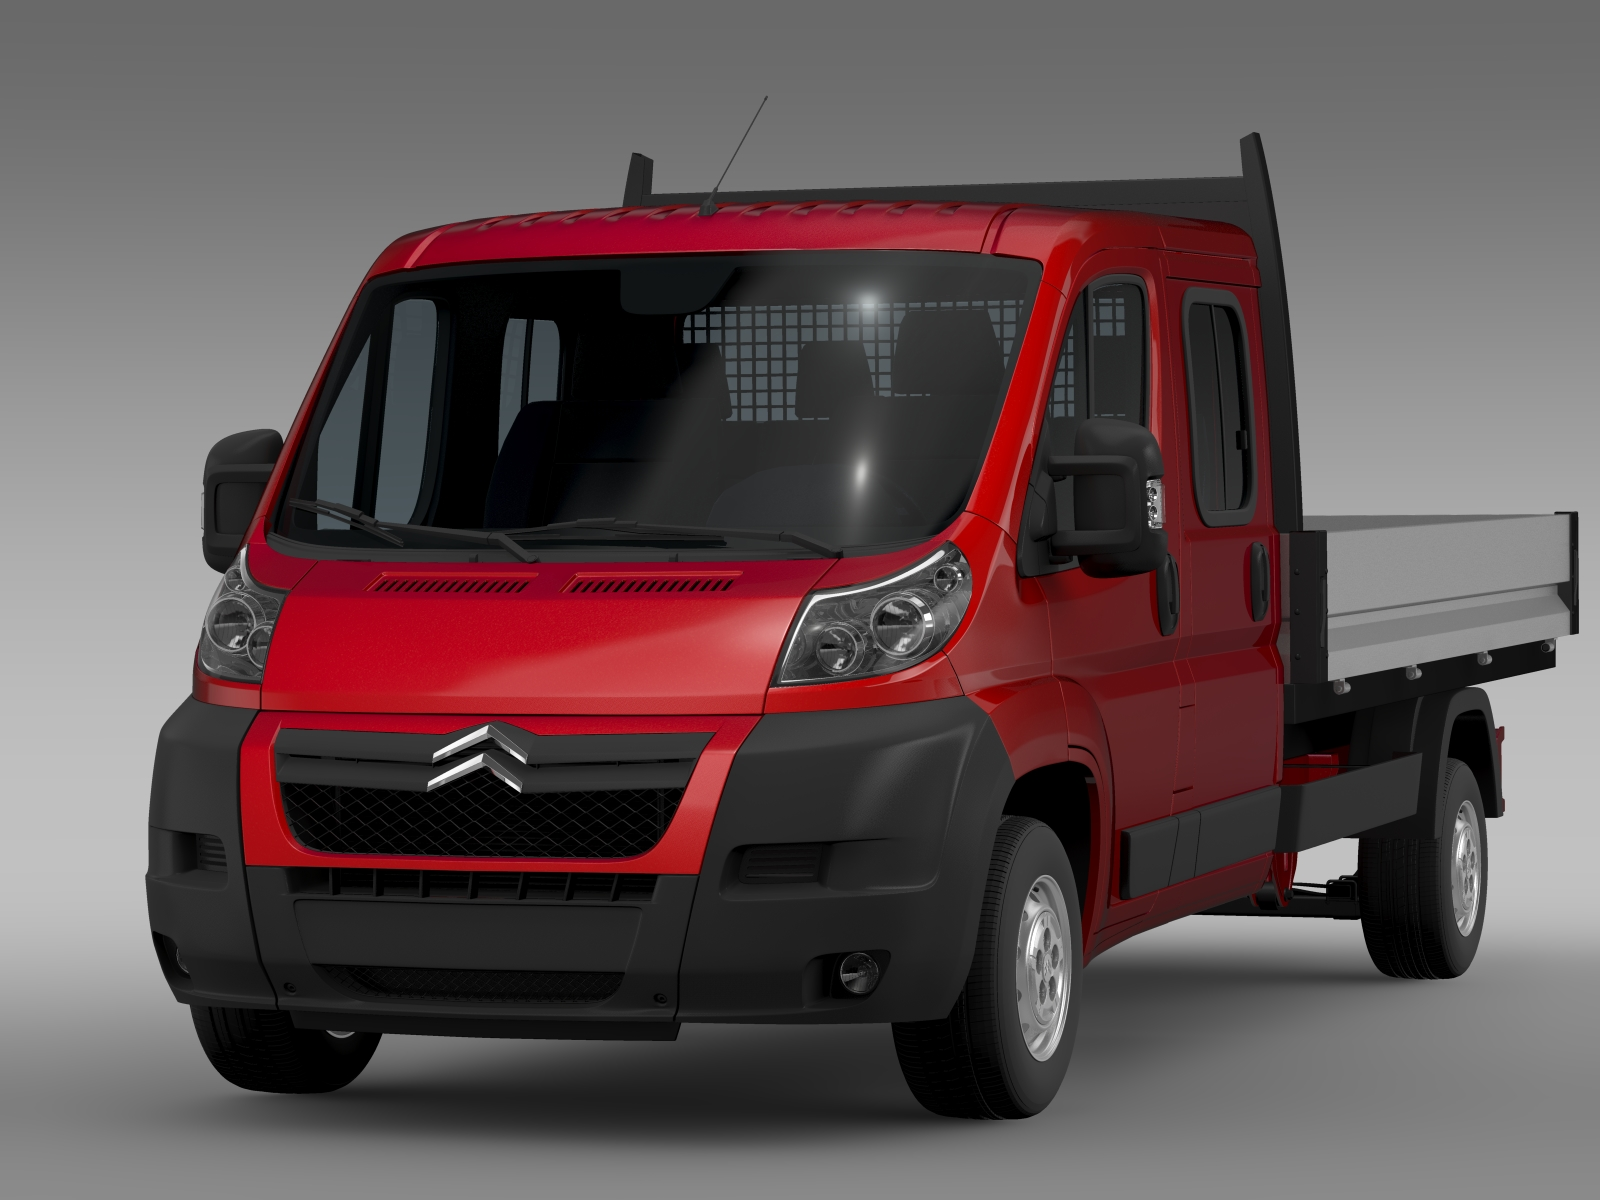 citroen jumper crew cab truck 2009 2014 3d model vehicles 3d models commercial 3ds max fbx c4d. Black Bedroom Furniture Sets. Home Design Ideas